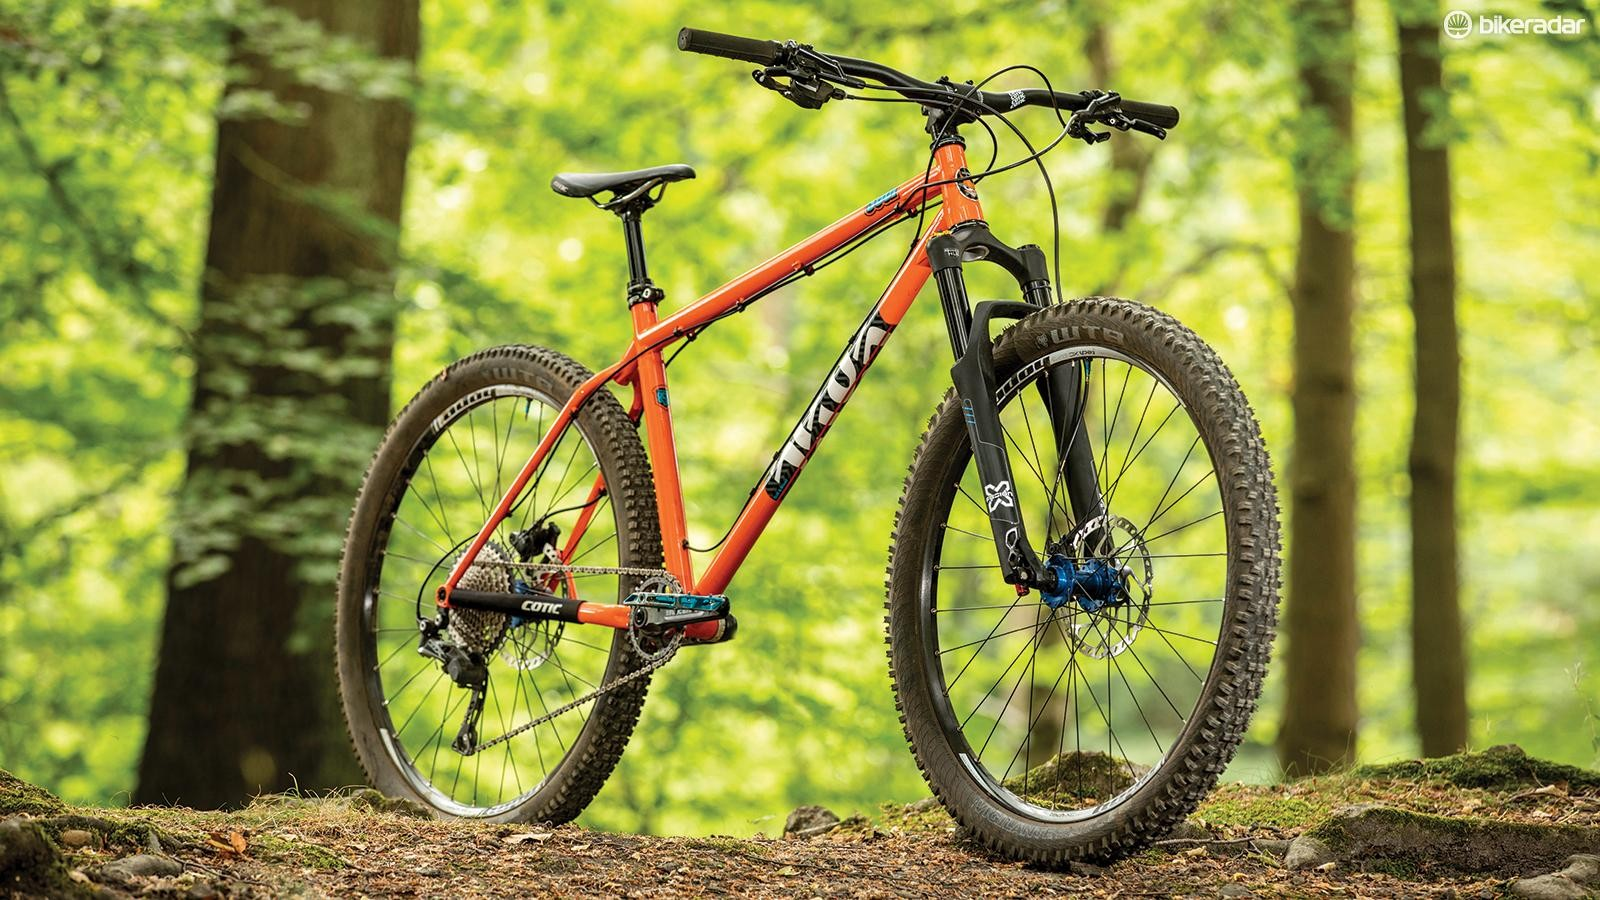 Skinny rims, a soft wheel-build and wooden-feeling tyres choked the sample, so give the frame fatter wheels and quality rubber to let it breathe